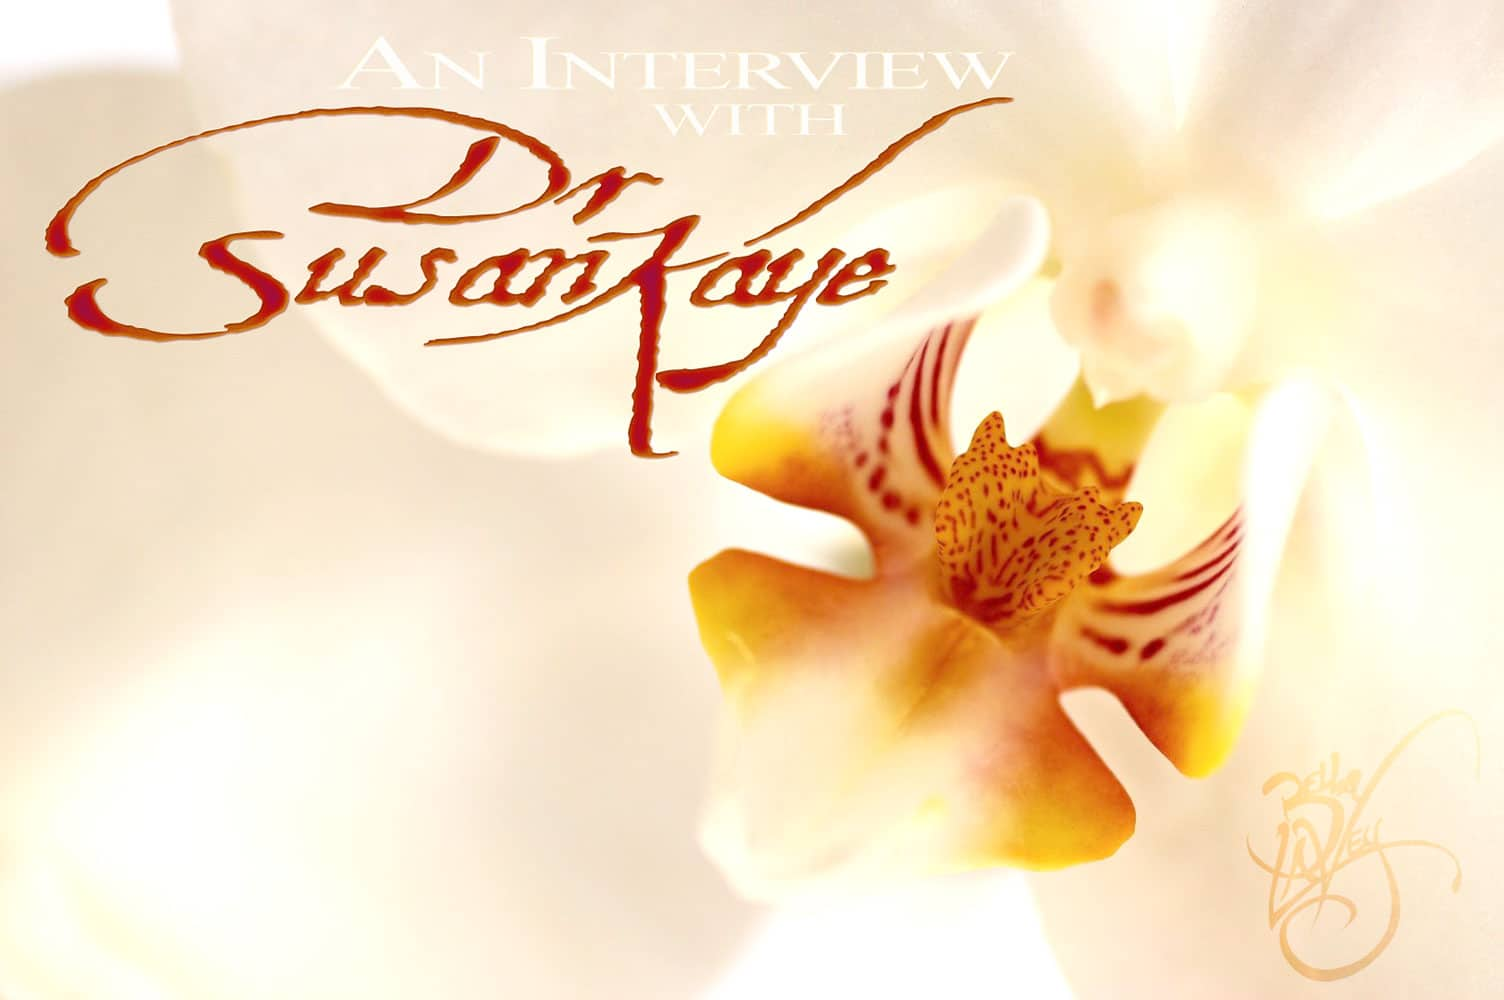 Interview with Dr Susan Kaye